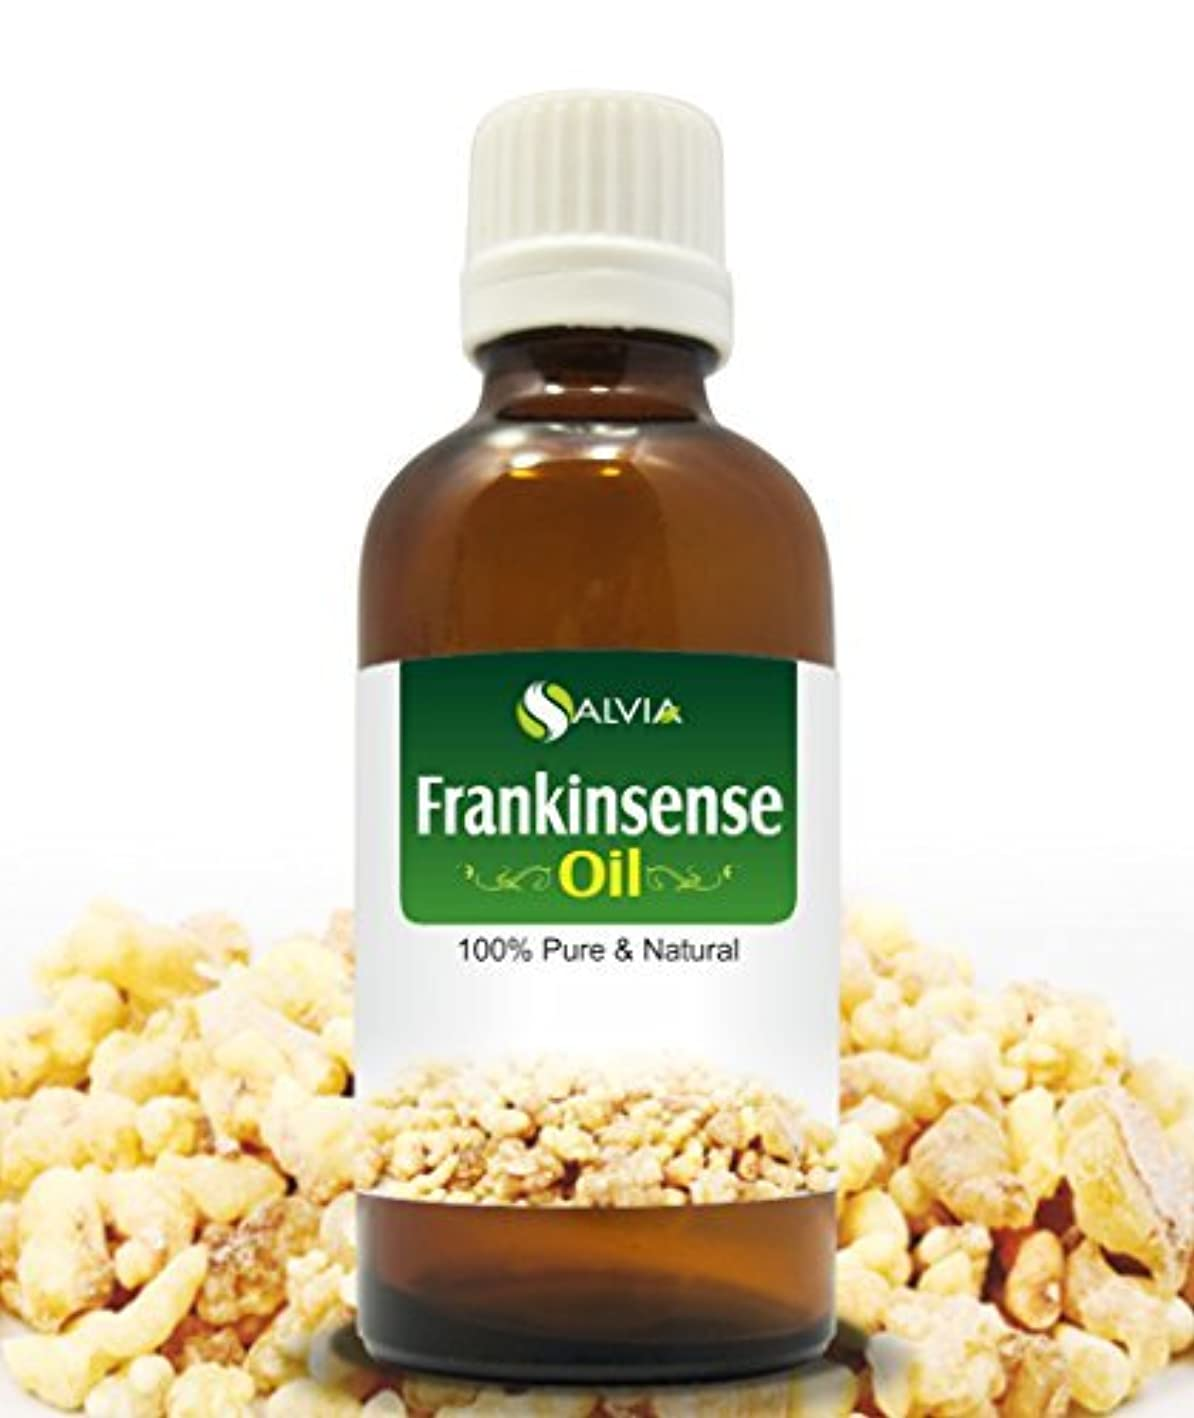 繊維乱す意見FRANKINCENSE OIL 100% NATURAL PURE UNDILUTED UNCUT ESSENTIAL OILS 100ML by SALVIA